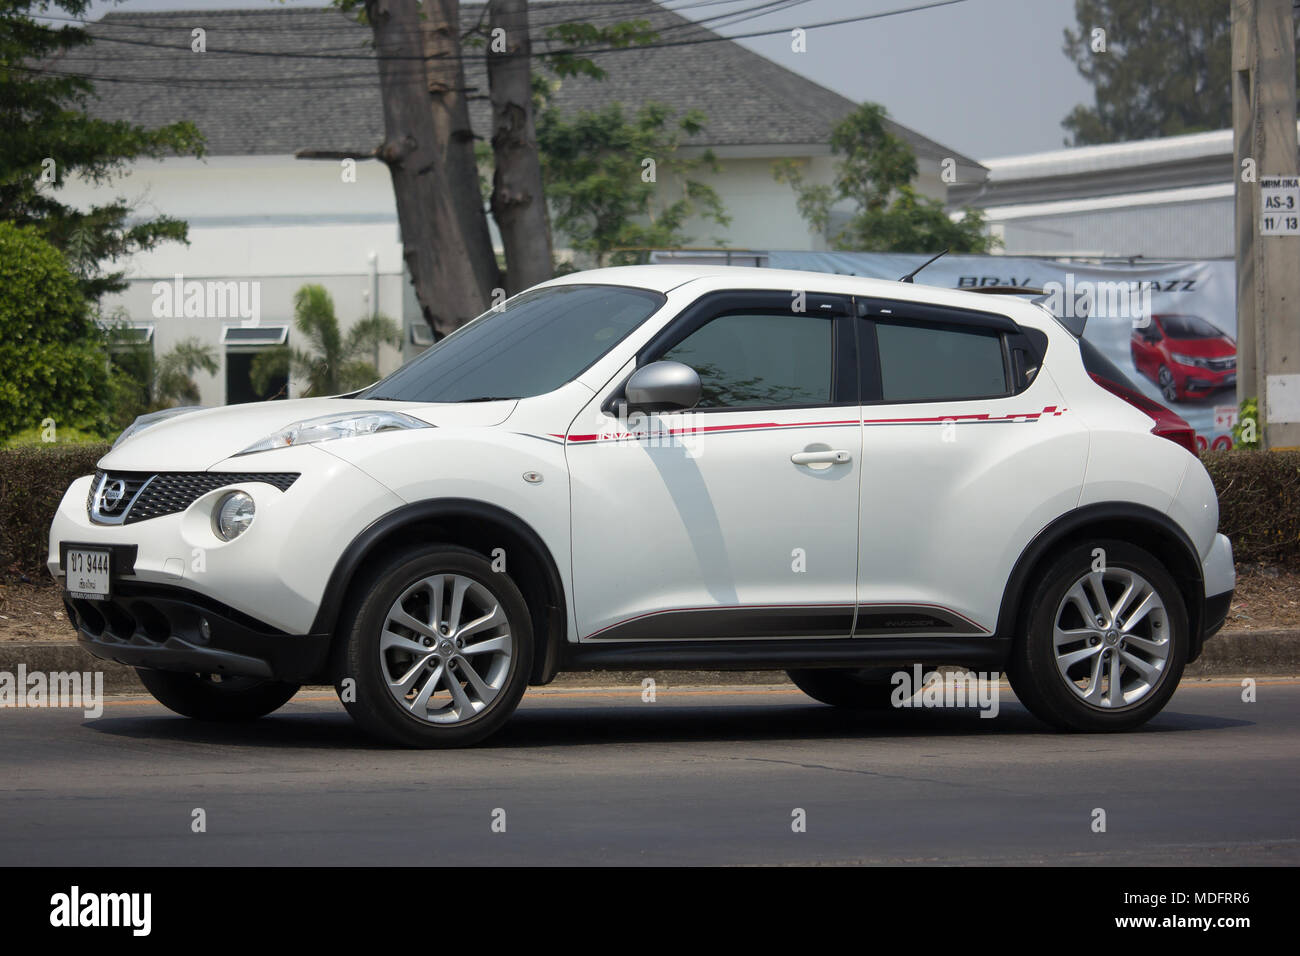 CHIANG MAI, THAILAND  MARCH 22 2018: Private Car, Nissan Juke. On